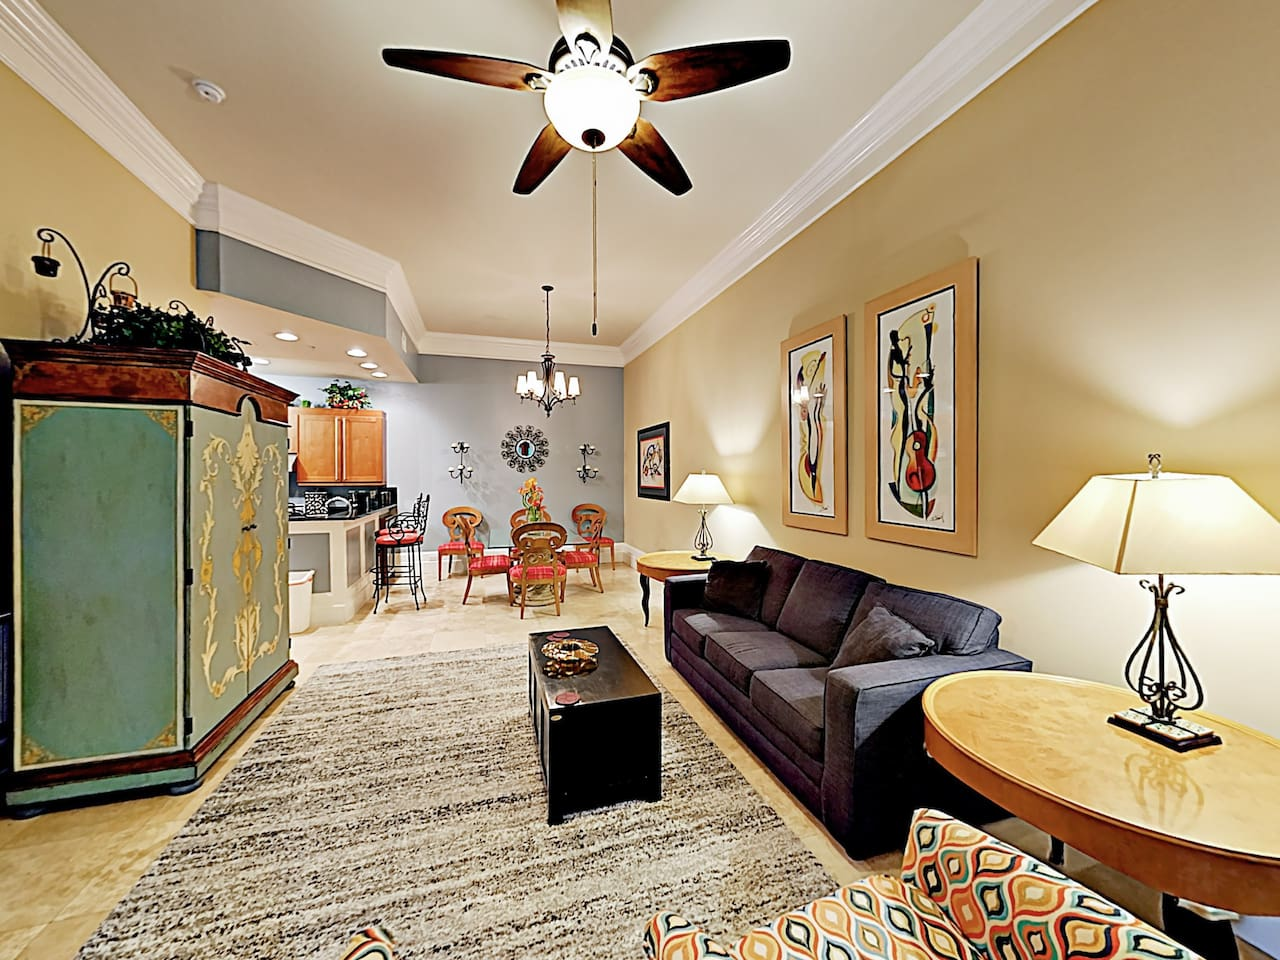 Welcome to Miramar Beach! This townhome is professionally managed by TurnKey Vacation Rentals.